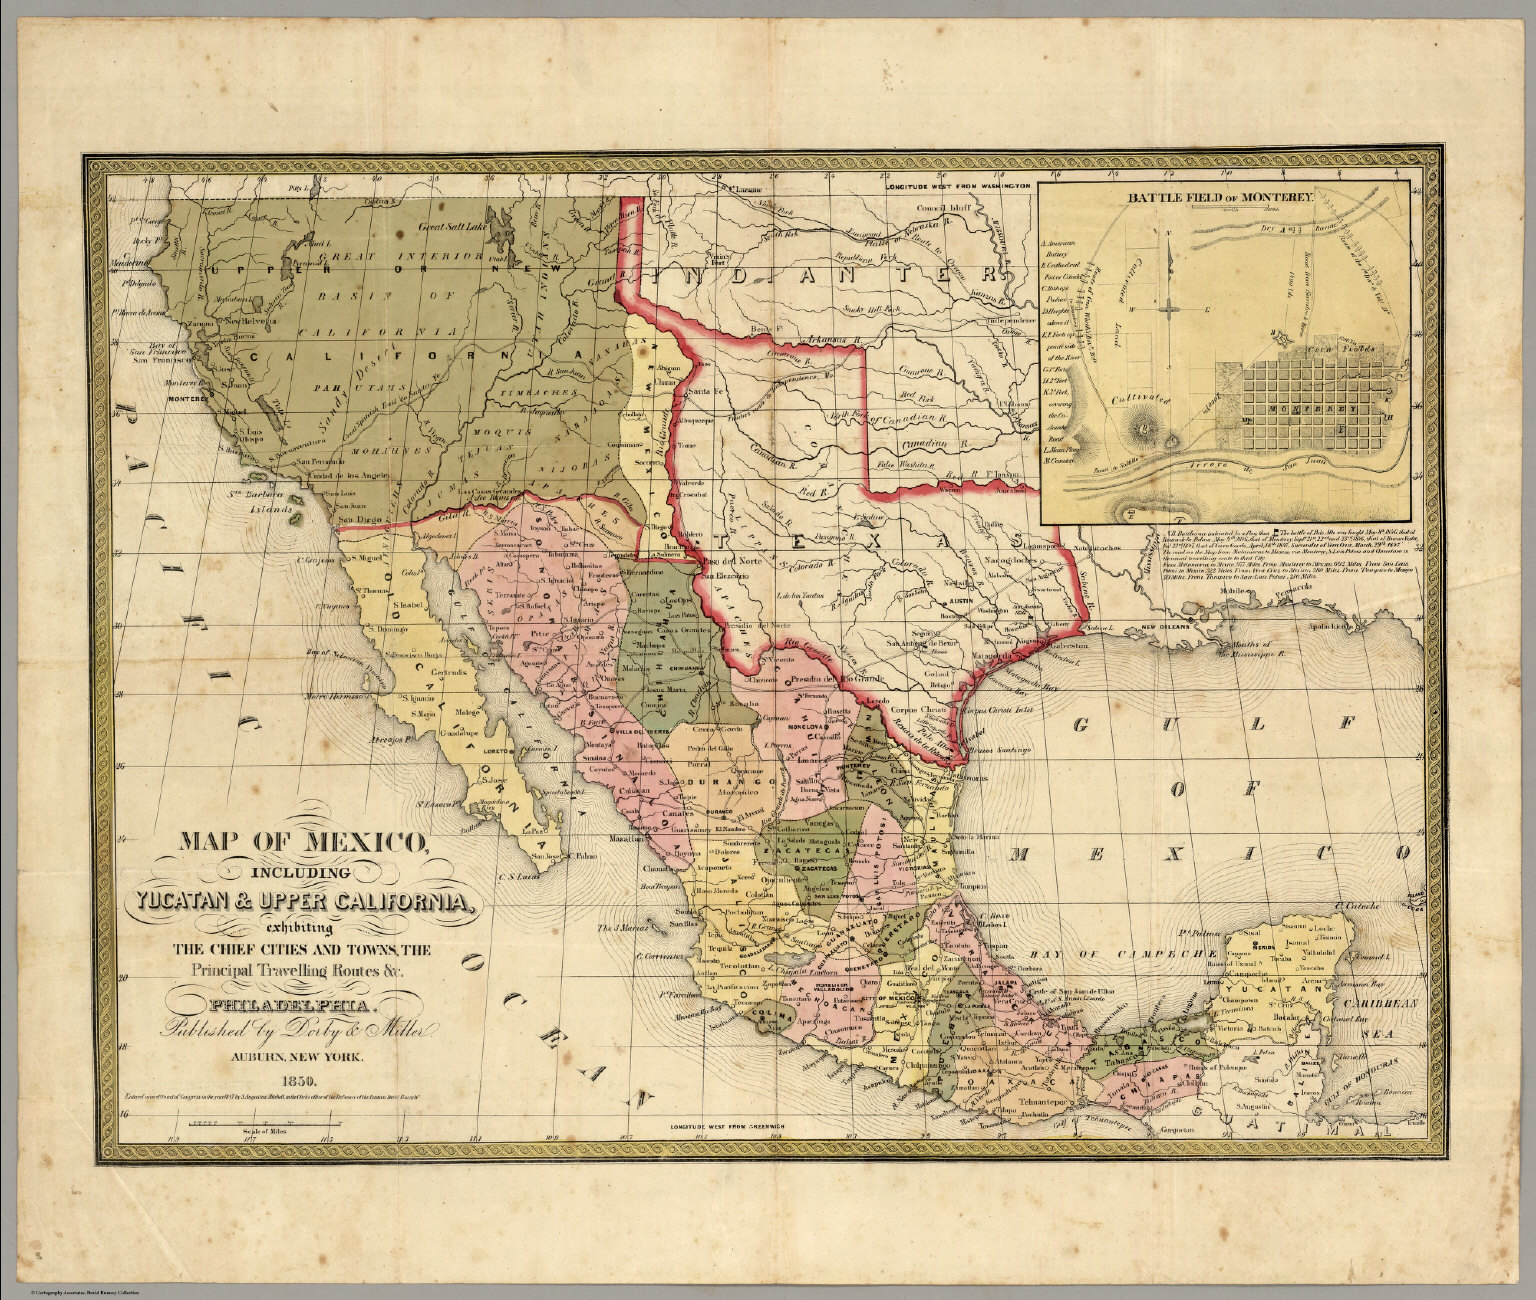 Map Of Mexico Including Yucatan Upper California David Rumsey – Map of Mexico Cities and Towns